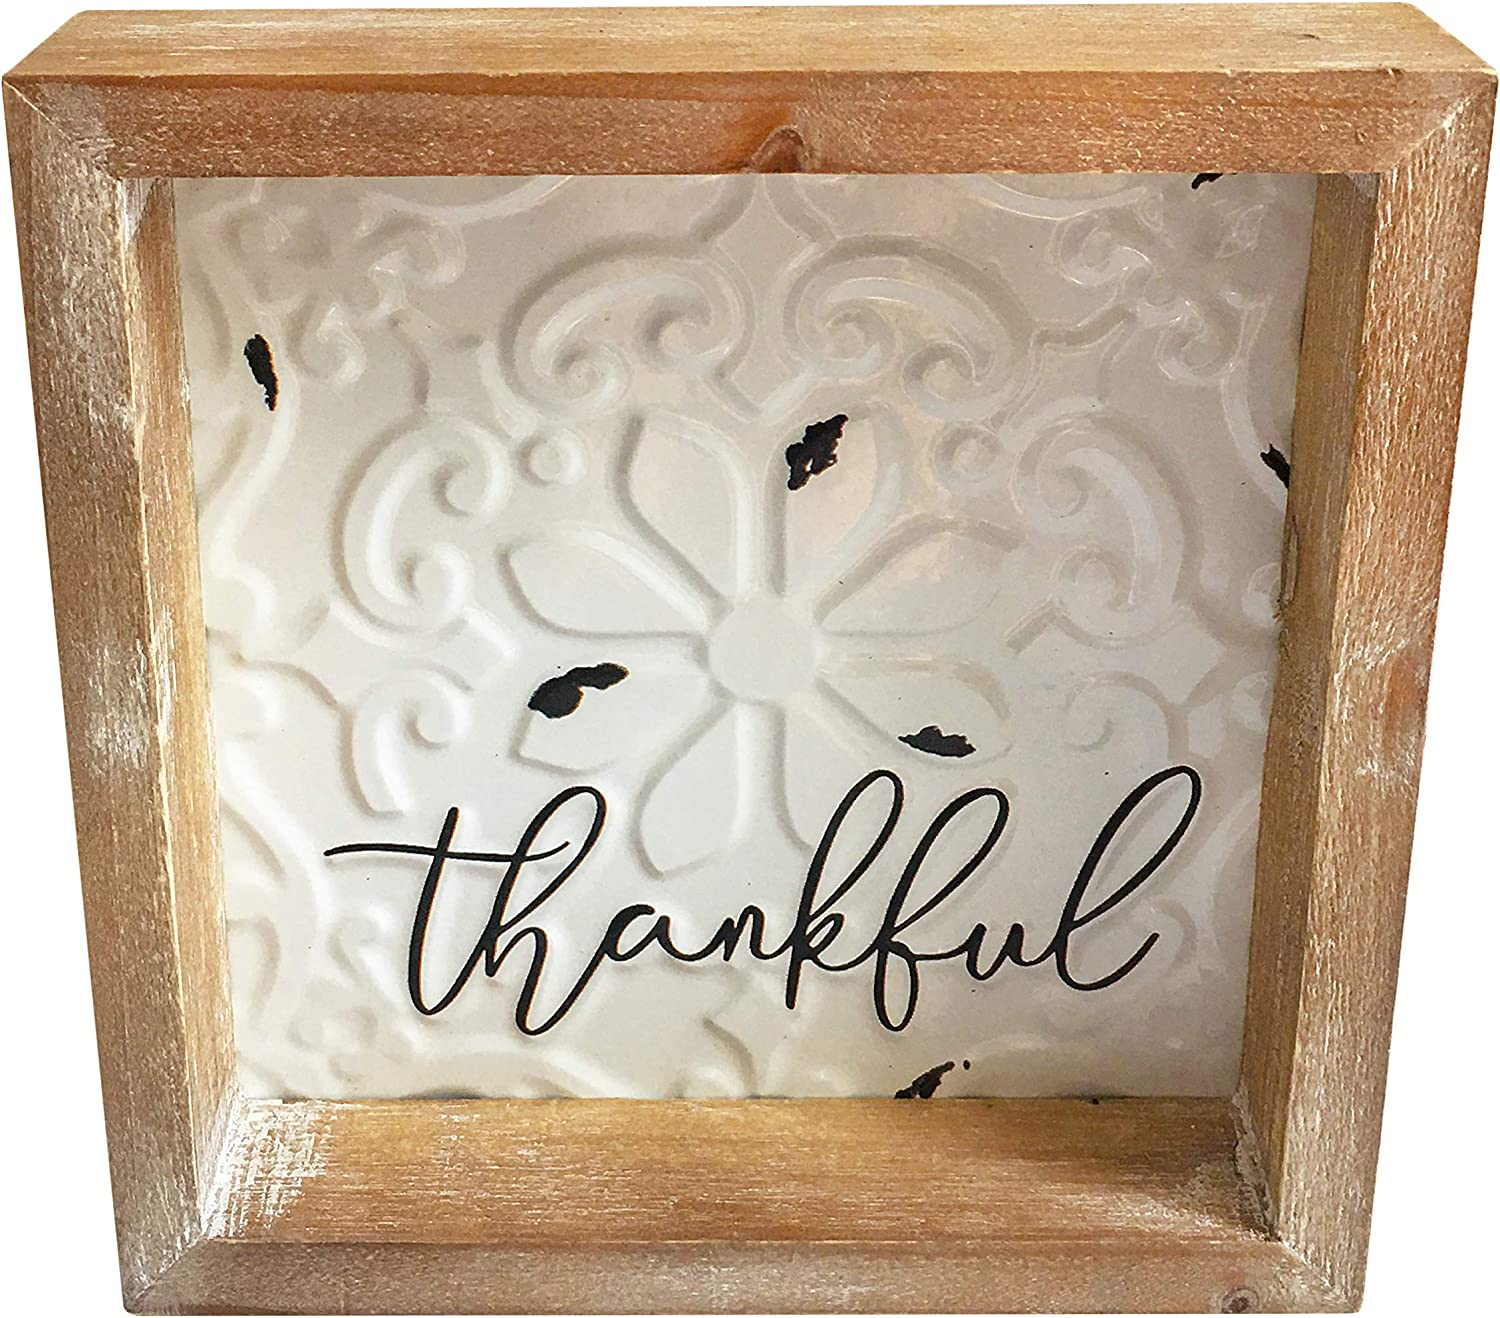 Wood Metal Thankful Sign, 8x8 inch Framed Rustic Embossed Enamel Home Table Decor Signs, Distressed Farmhouse Wooden Box Sign Gift for Shelf Mantel Living Dining Room Bedroom Kitchen Decoration